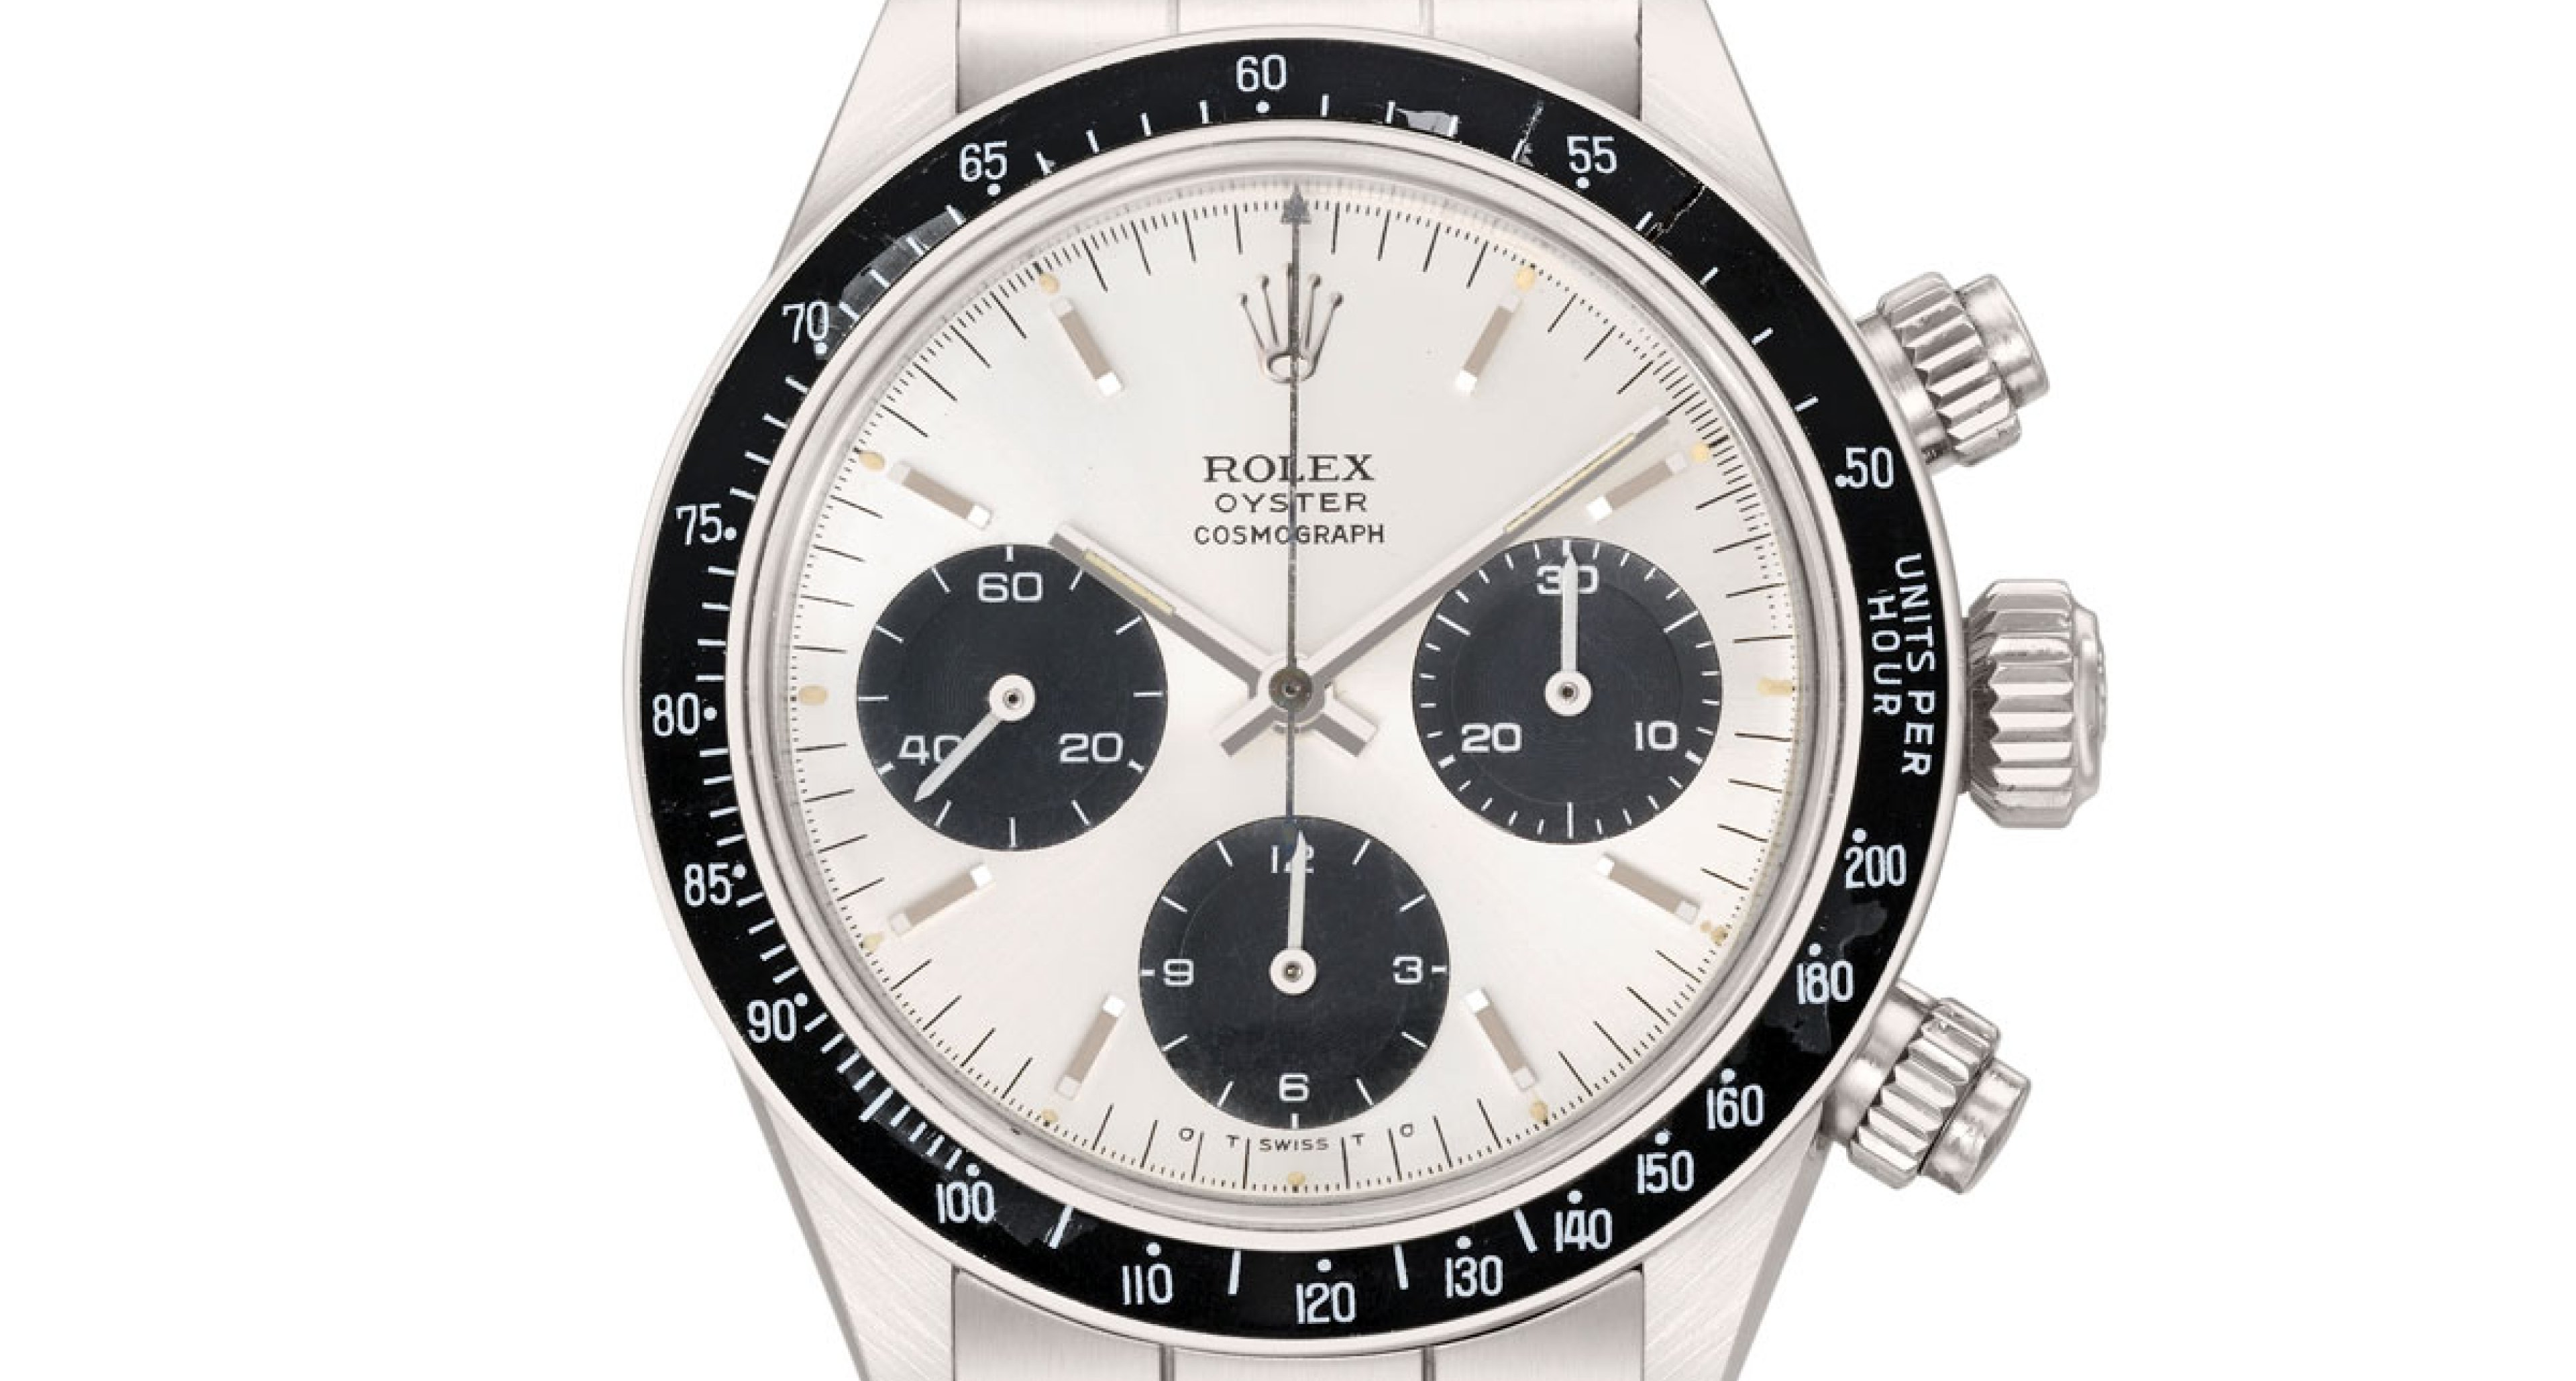 Rolex Daytona FAP Military Oyster Cosmograph